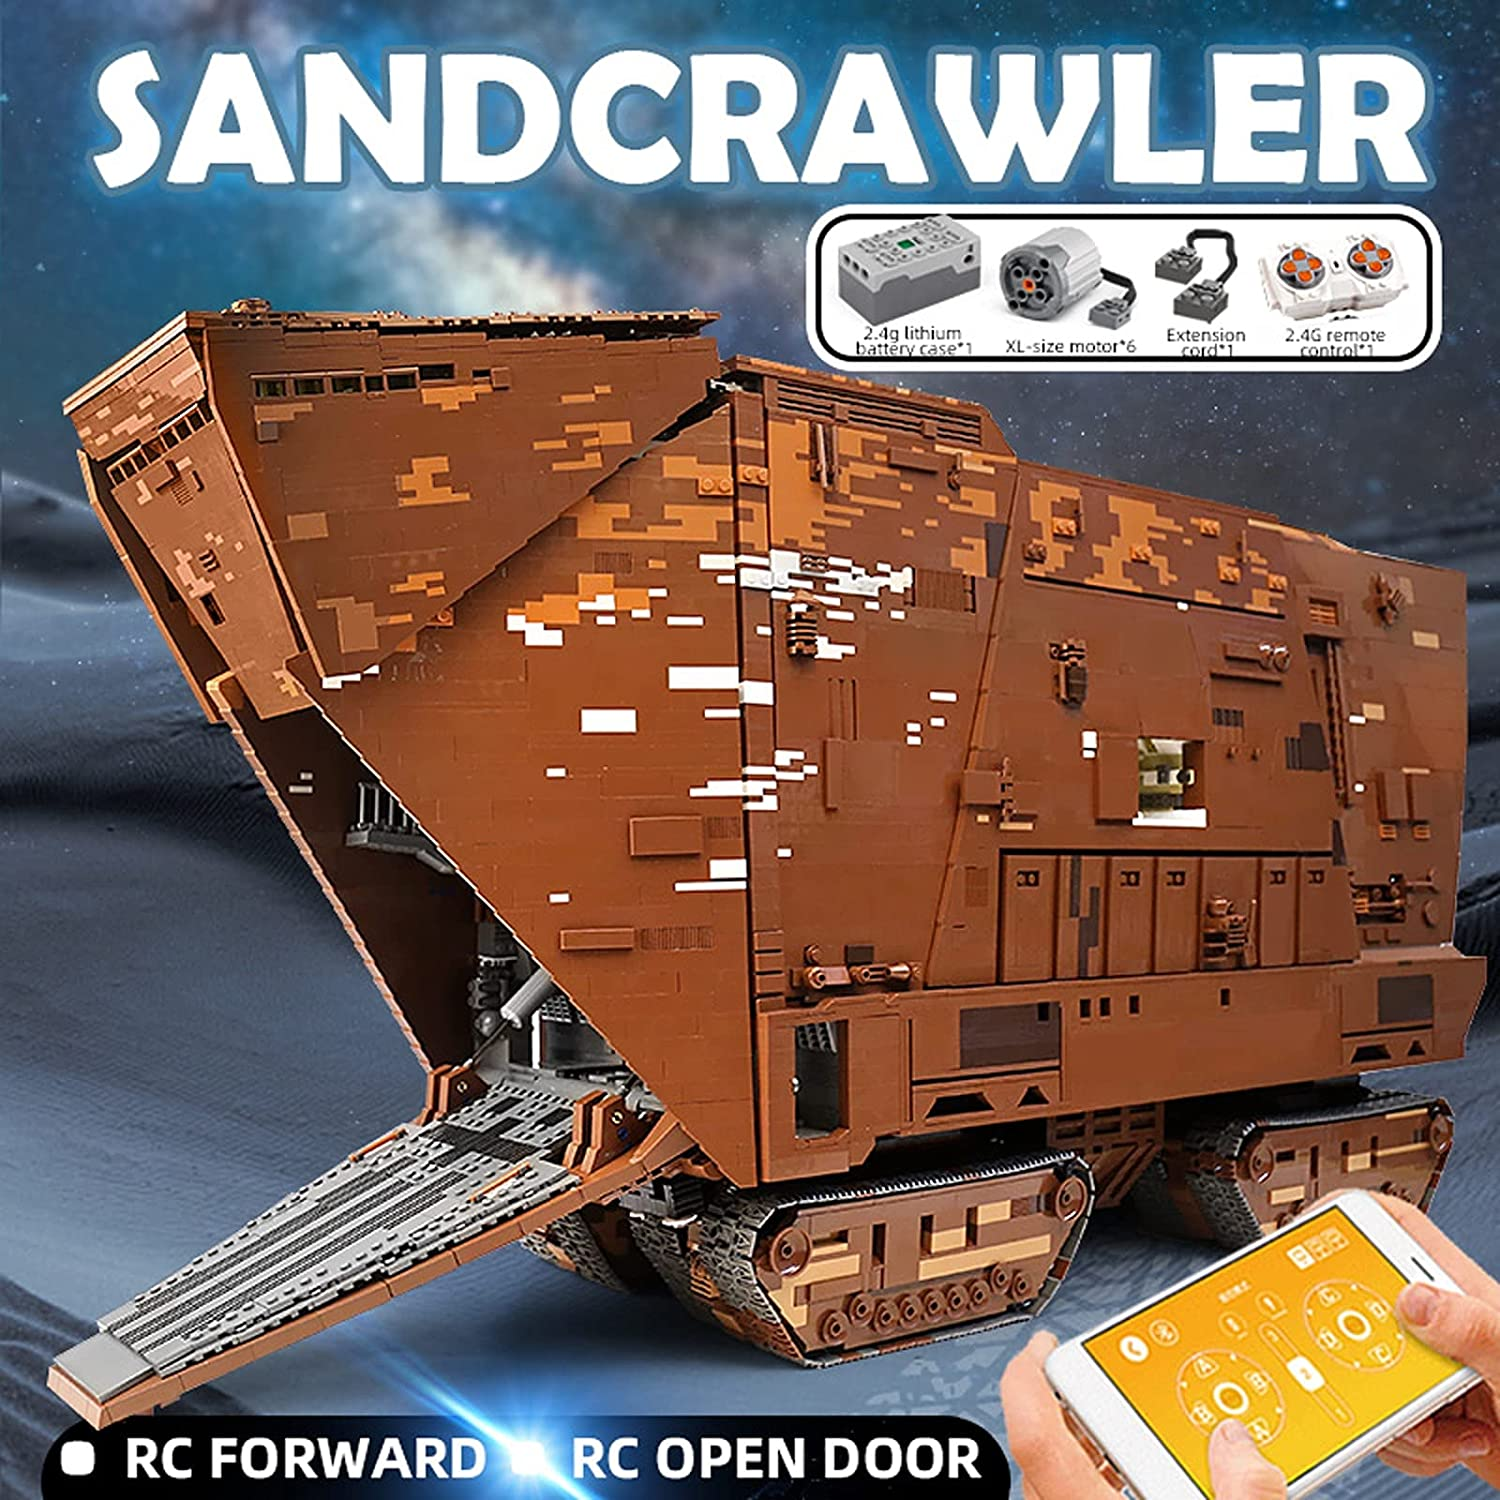 SW Sandcrawler Building Kit Lego Set 3